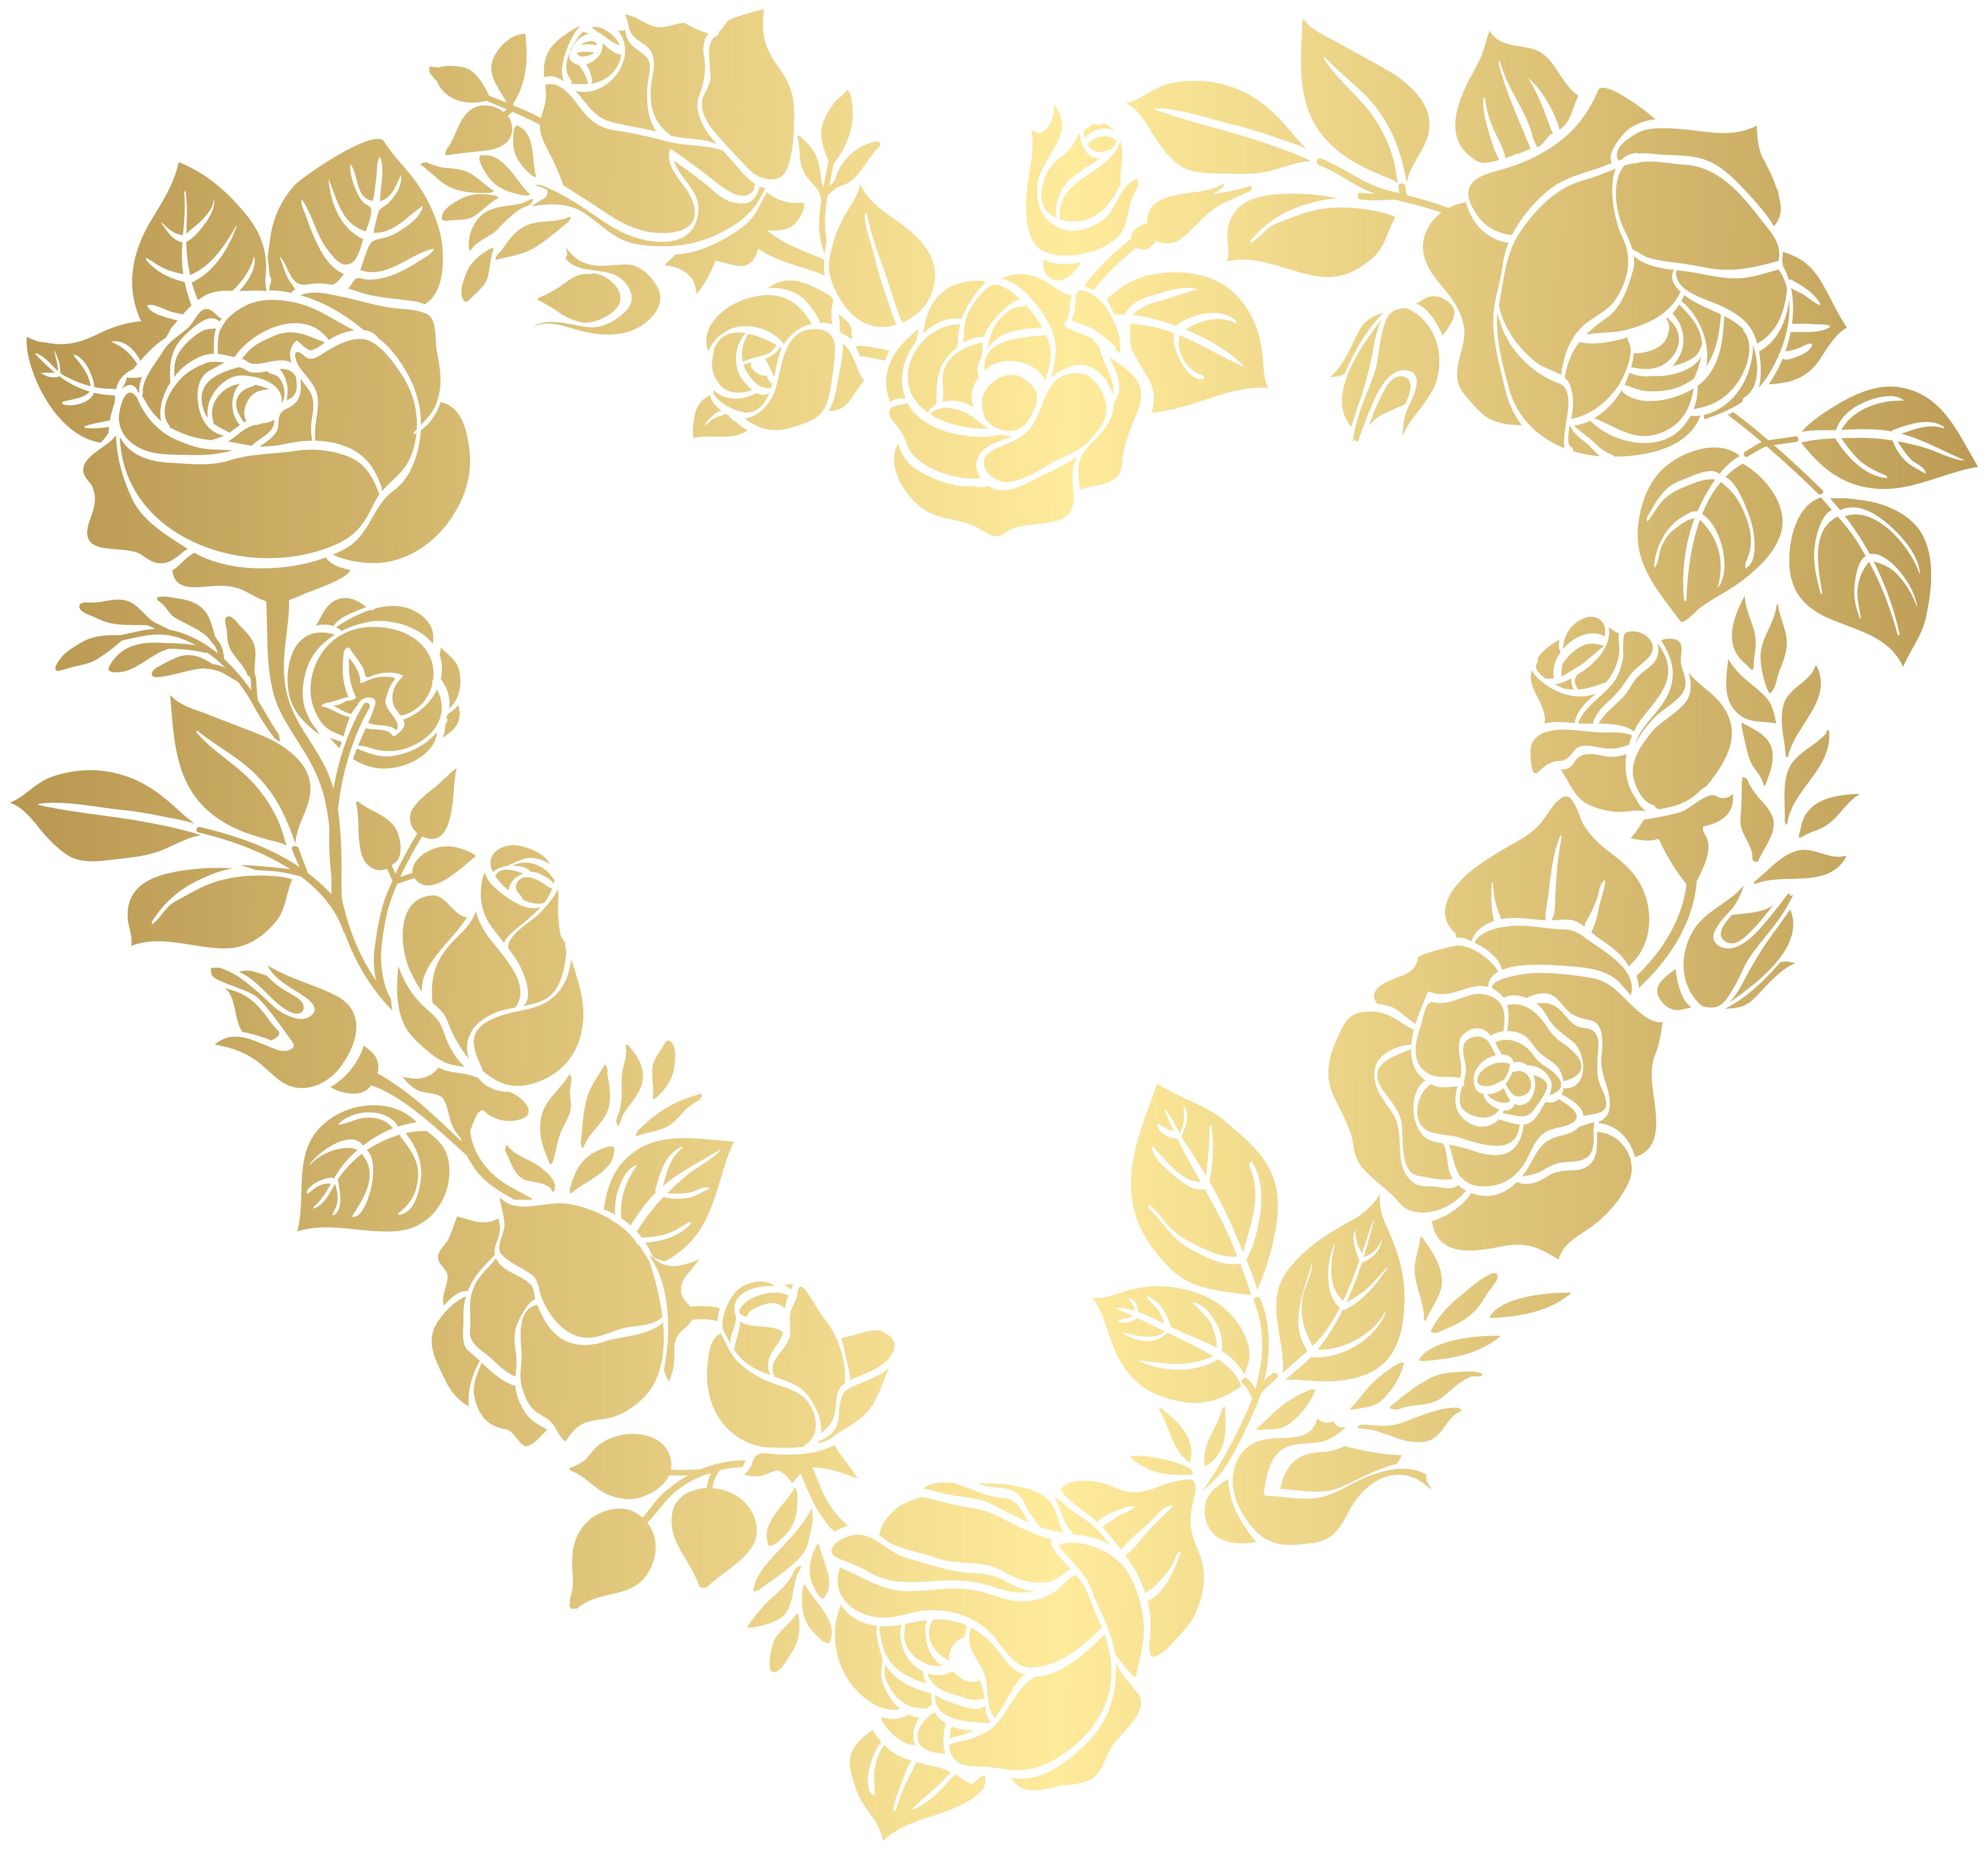 Free heart border clipart black and white download Heart Clip art - Floral Golden Heart Border Frame PNG Clip Art 8000 ... black and white download